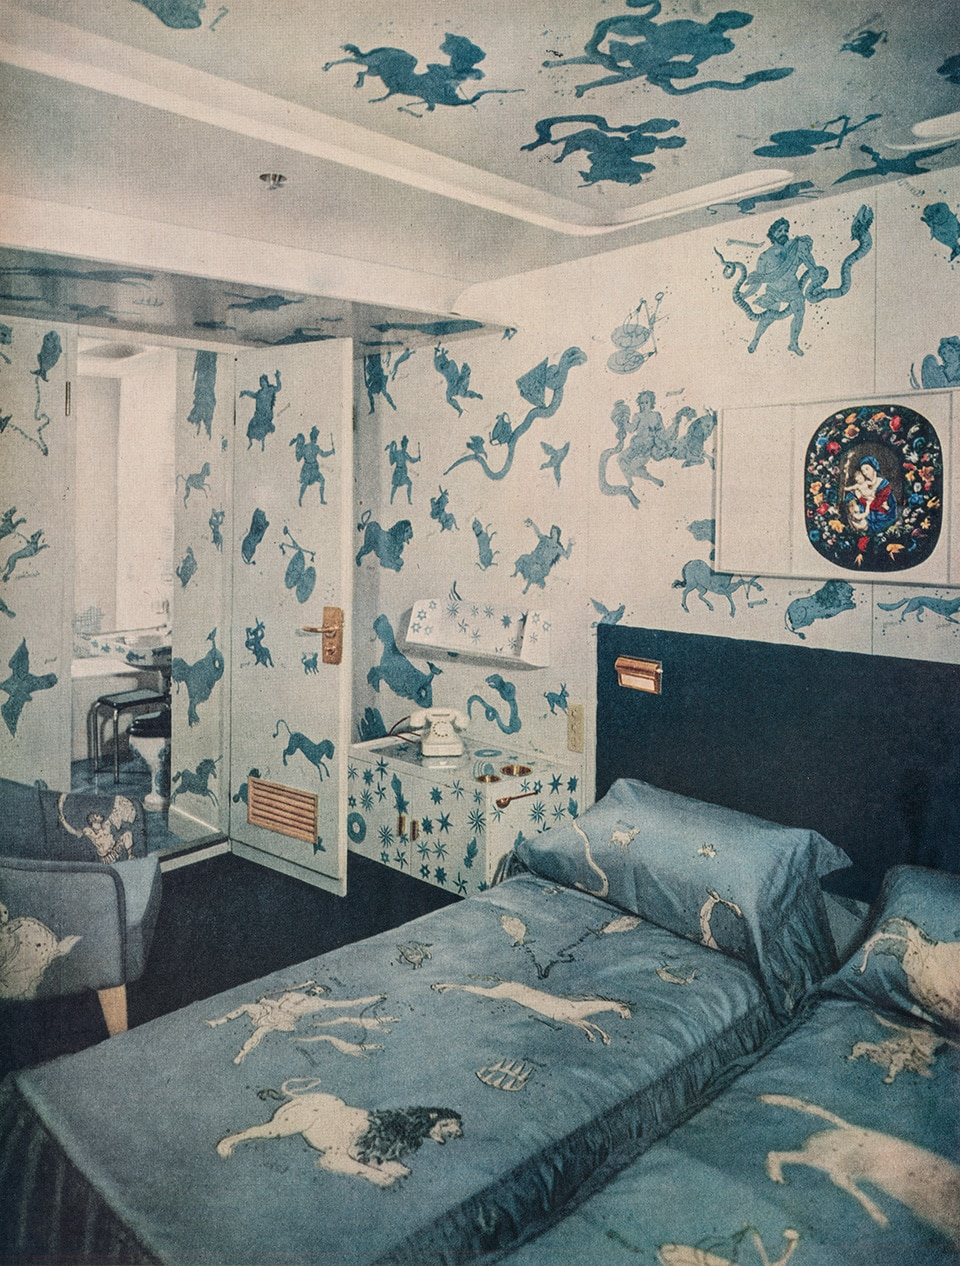 An image from a promotional brochure for the Andrea Doria showing the ship's Zodiac Suite, as seen in the book Gio Ponti, offered by Taschen